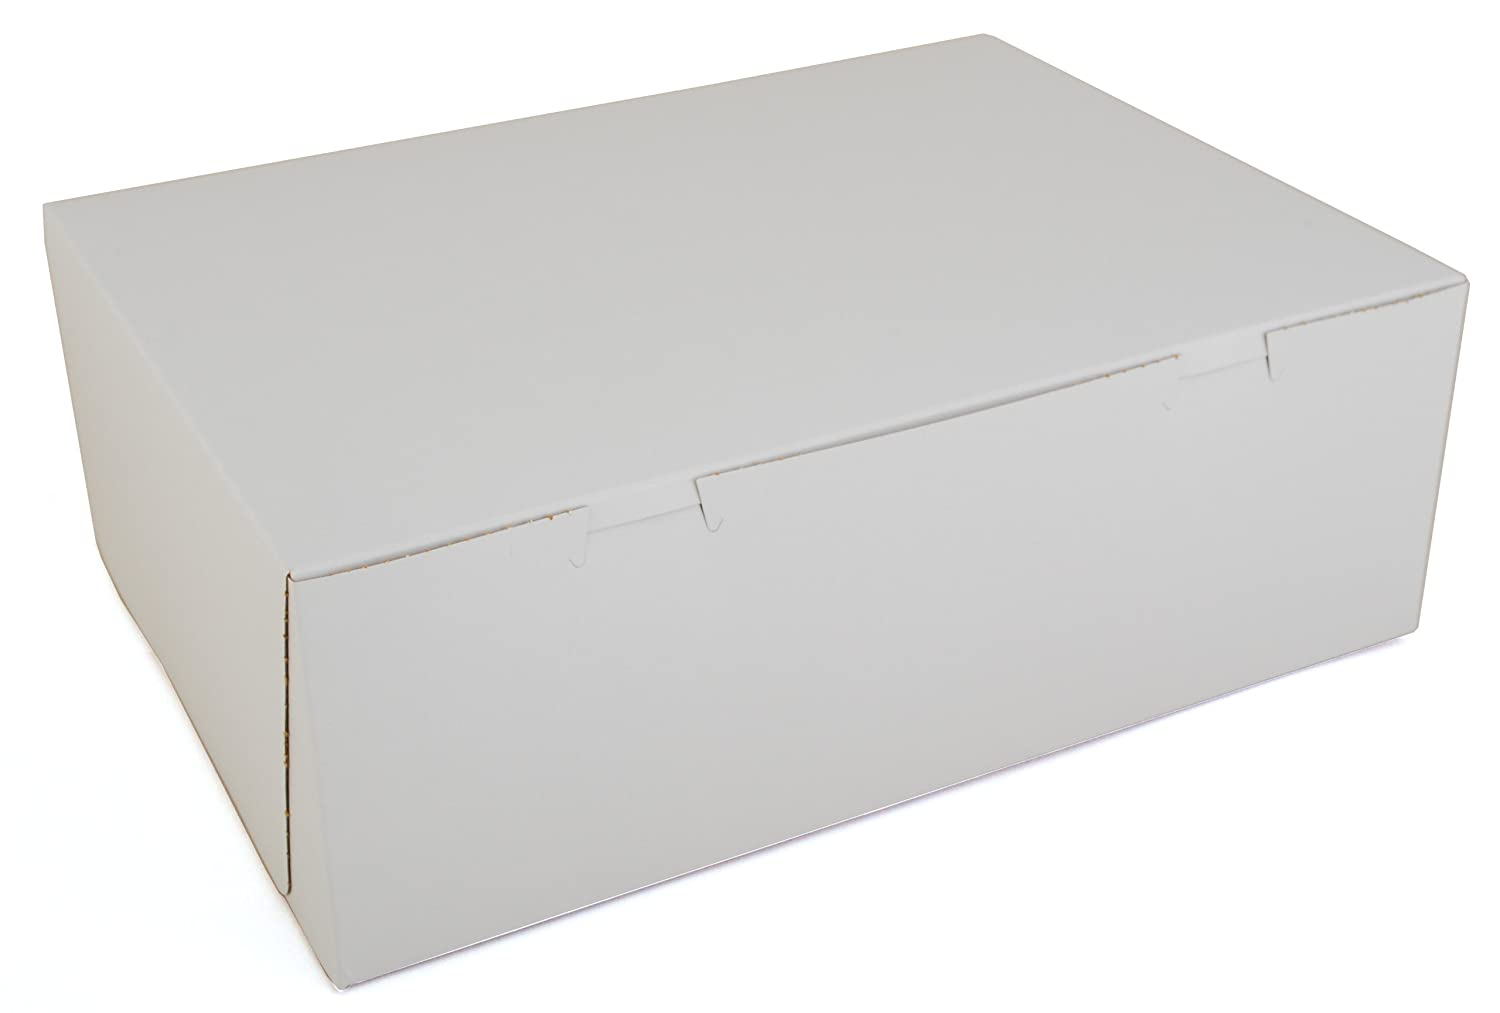 Southern Champion Tray 1005 Premium Clay Coated Kraft Paperboard White Non-Window Sheet Cake and Utility Box, 14-1/2